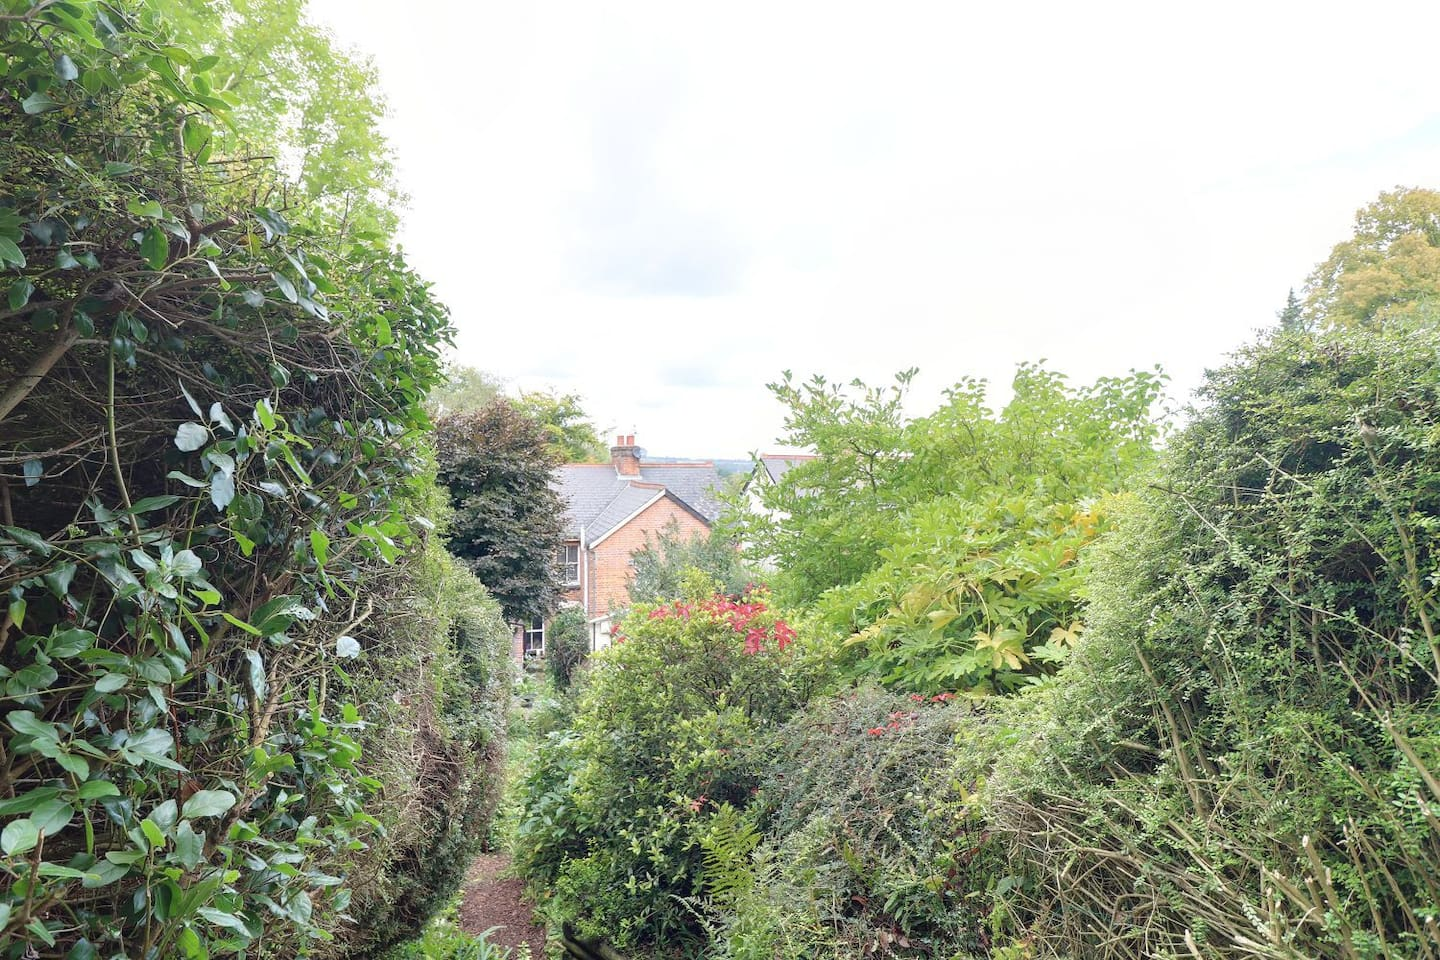 View from top of the garden